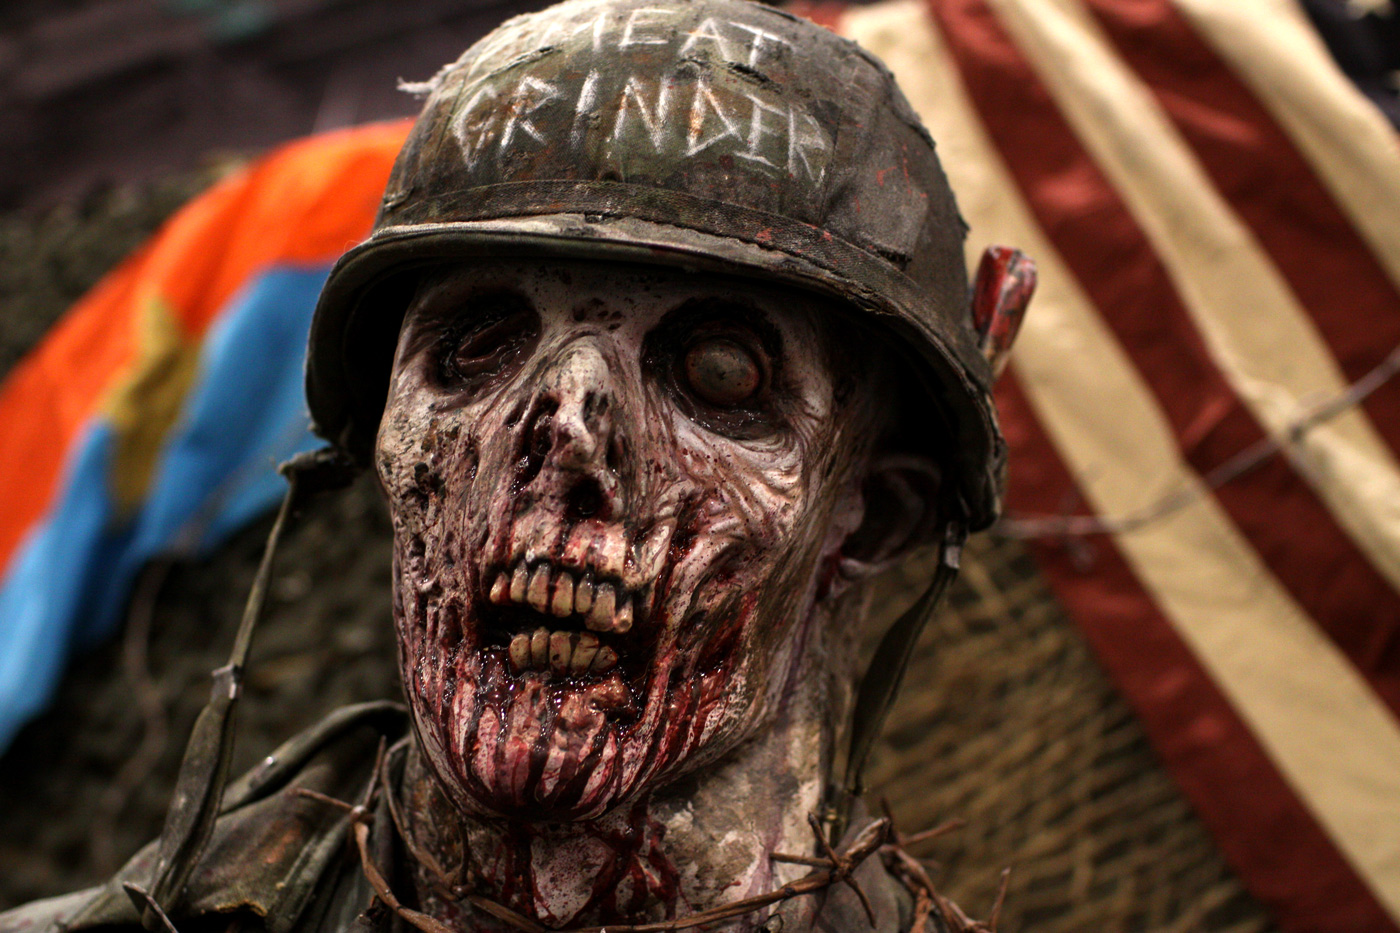 FILM NEWS: REAL ZOMBIE FOOTAGE REVEALED!!! C.A.M.